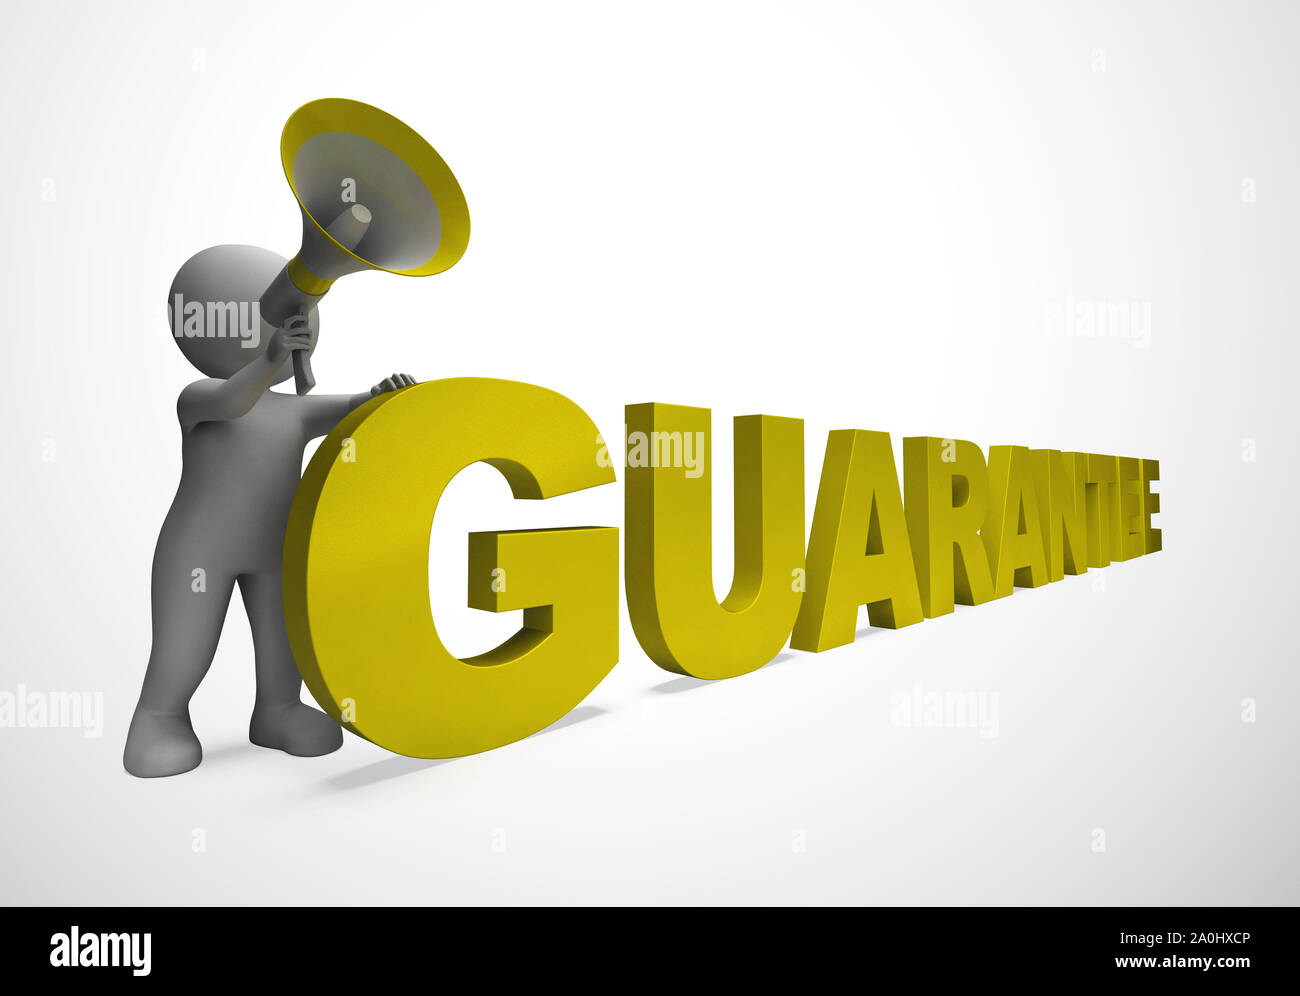 Guarantee Concept Icon Means A Safeguard Or Insurance Against Product Faults Dependable Agreement Against Consumer Dissatisfaction 3d Illustration Stock Photo Alamy